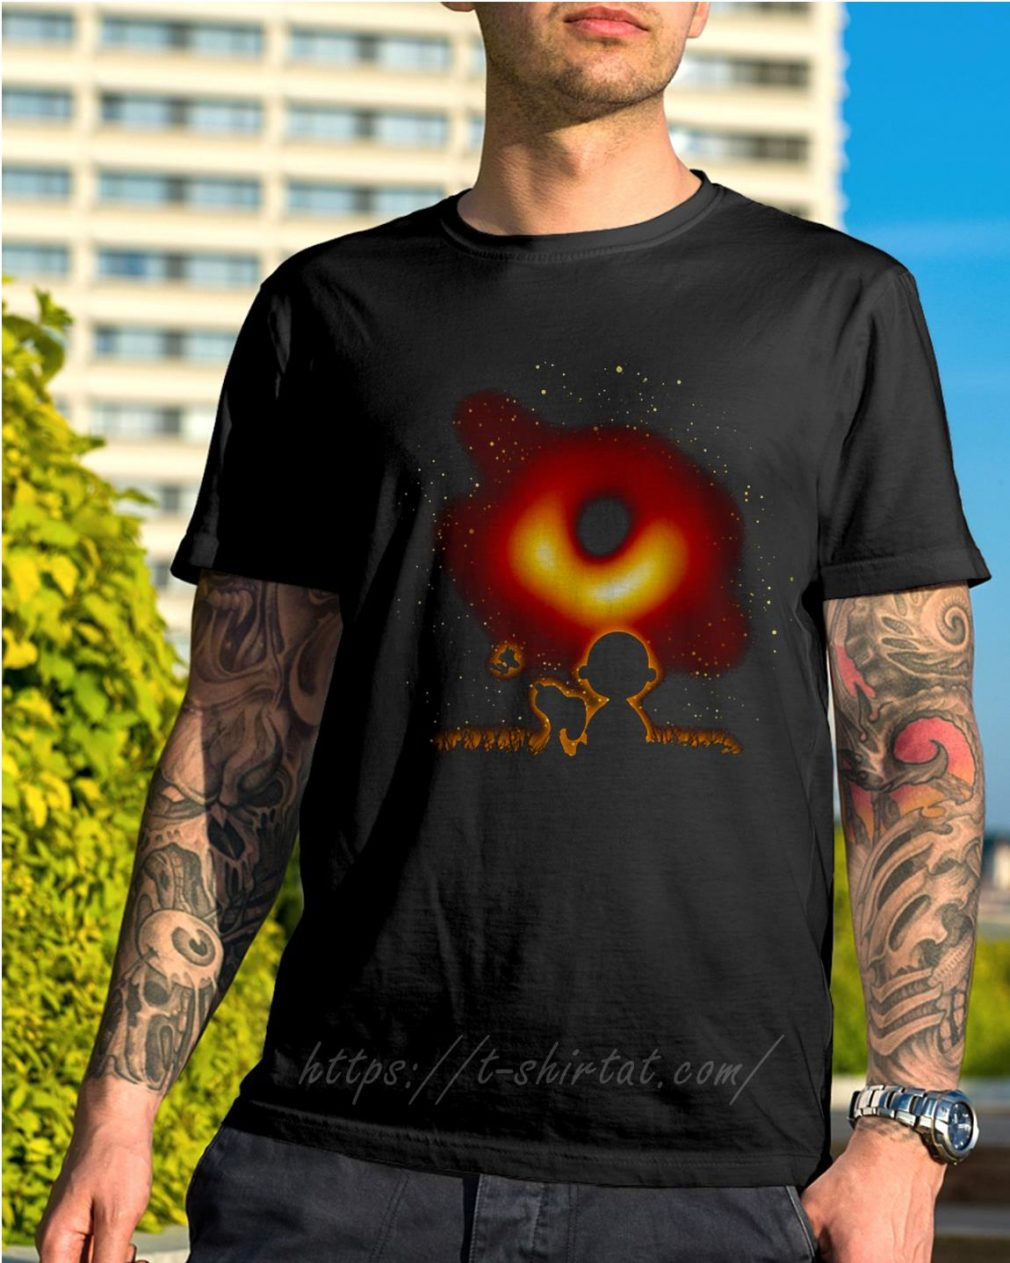 Woodstock Snoopy and Charlie Brown watching black hole 2019 shirt